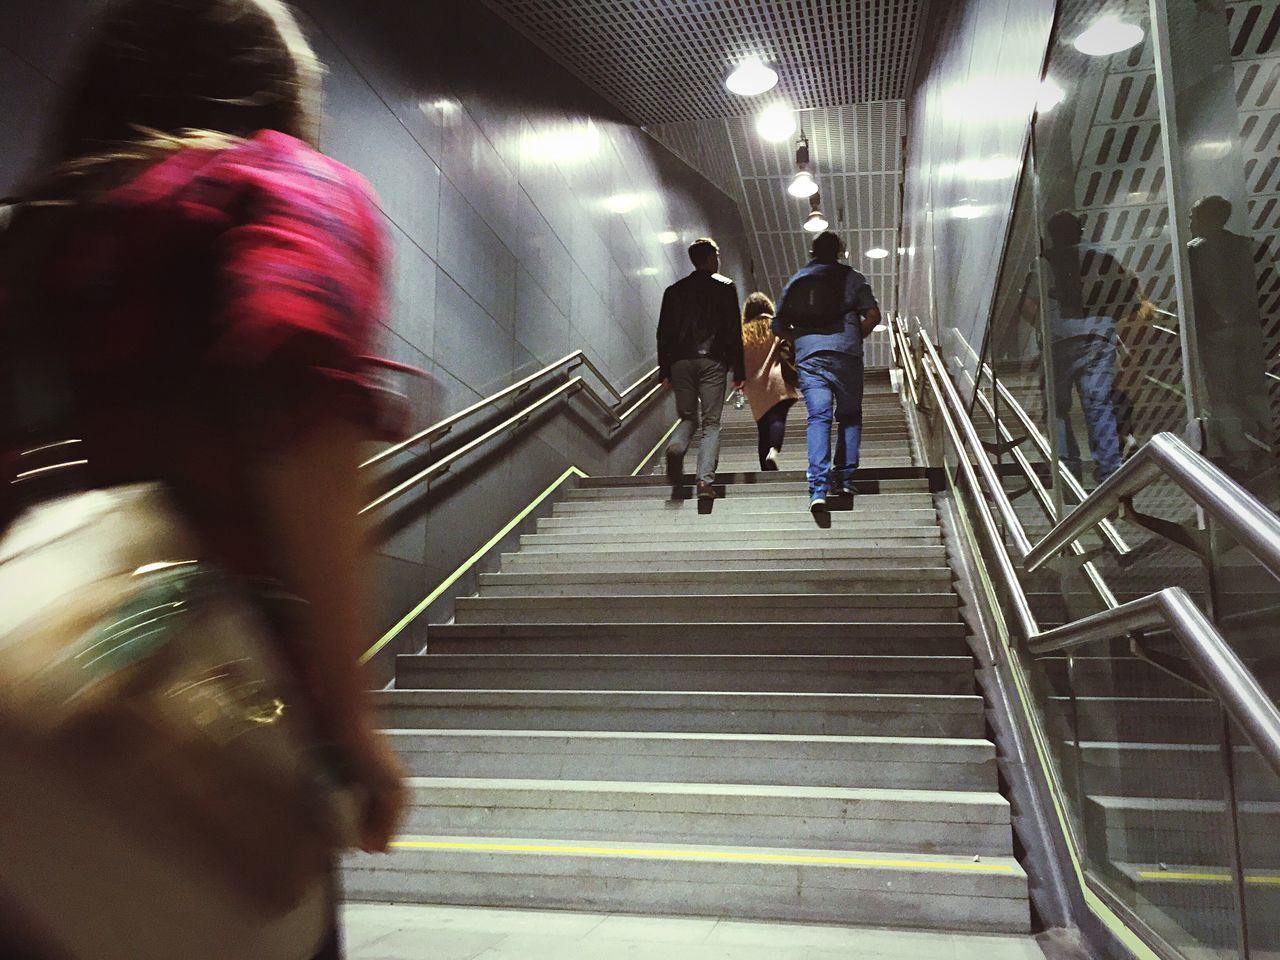 Stairs People Night Subway